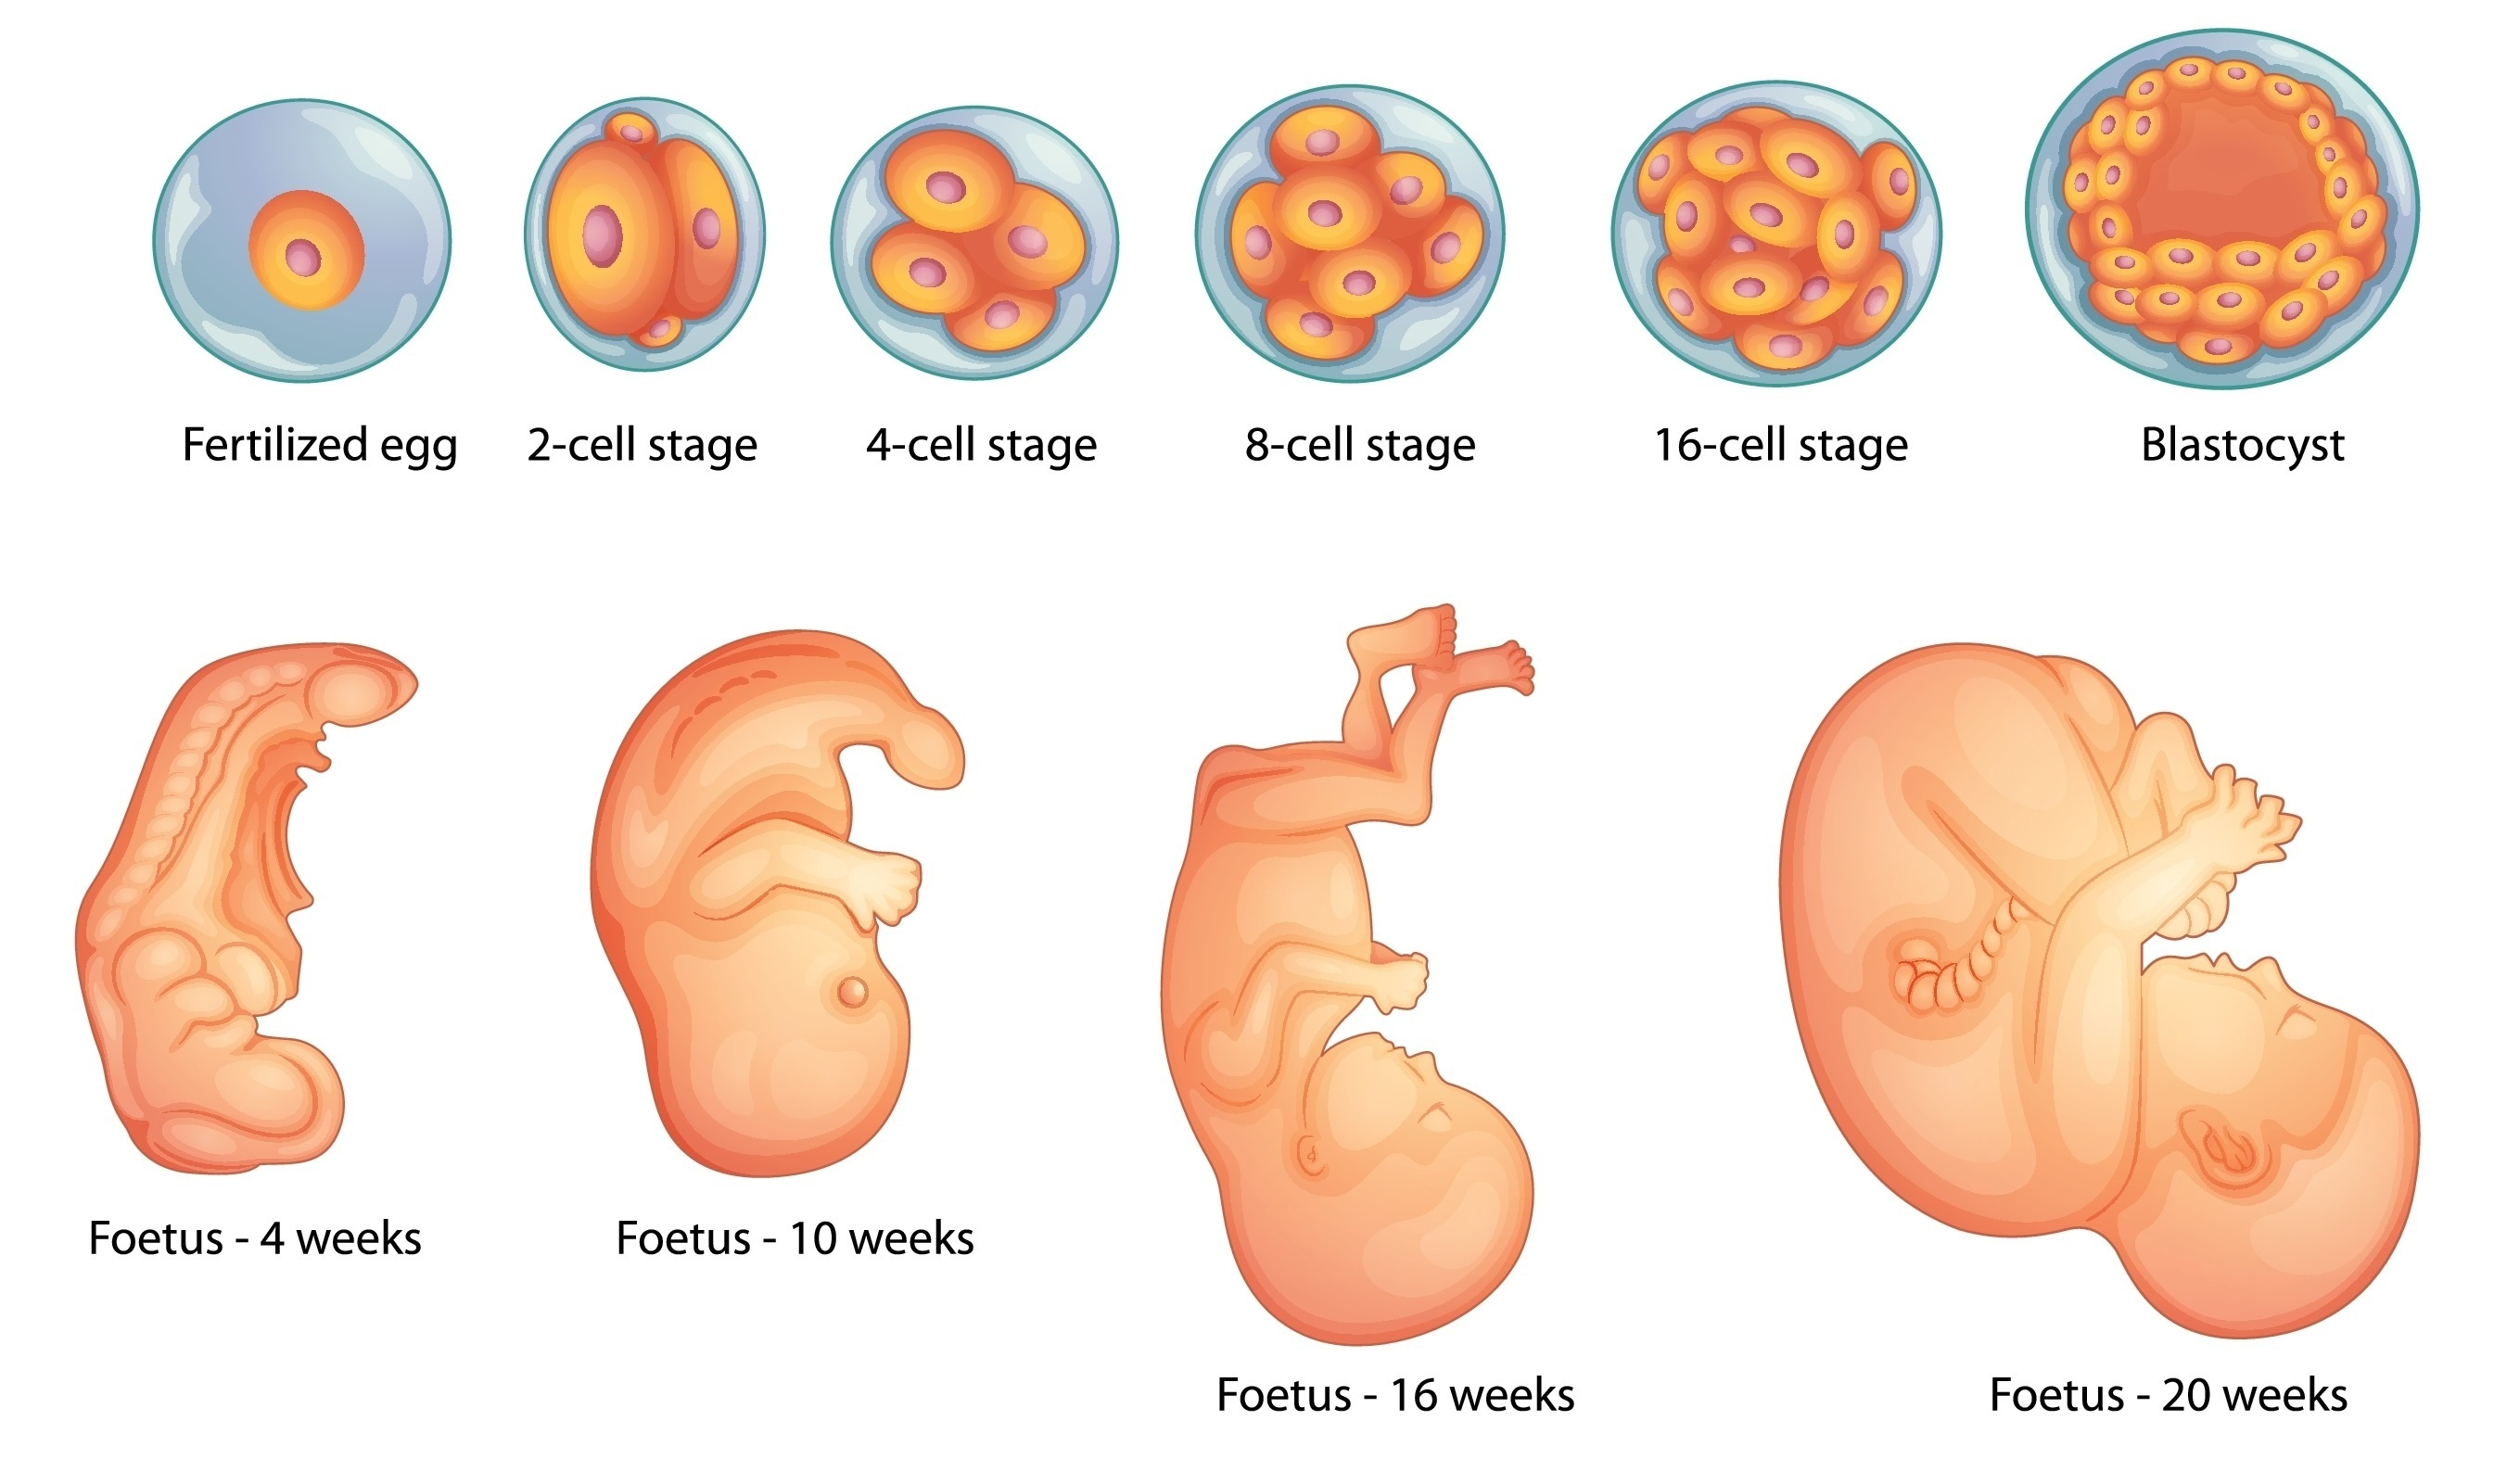 The developing fetus from fertilized egg to 20 week old foetus